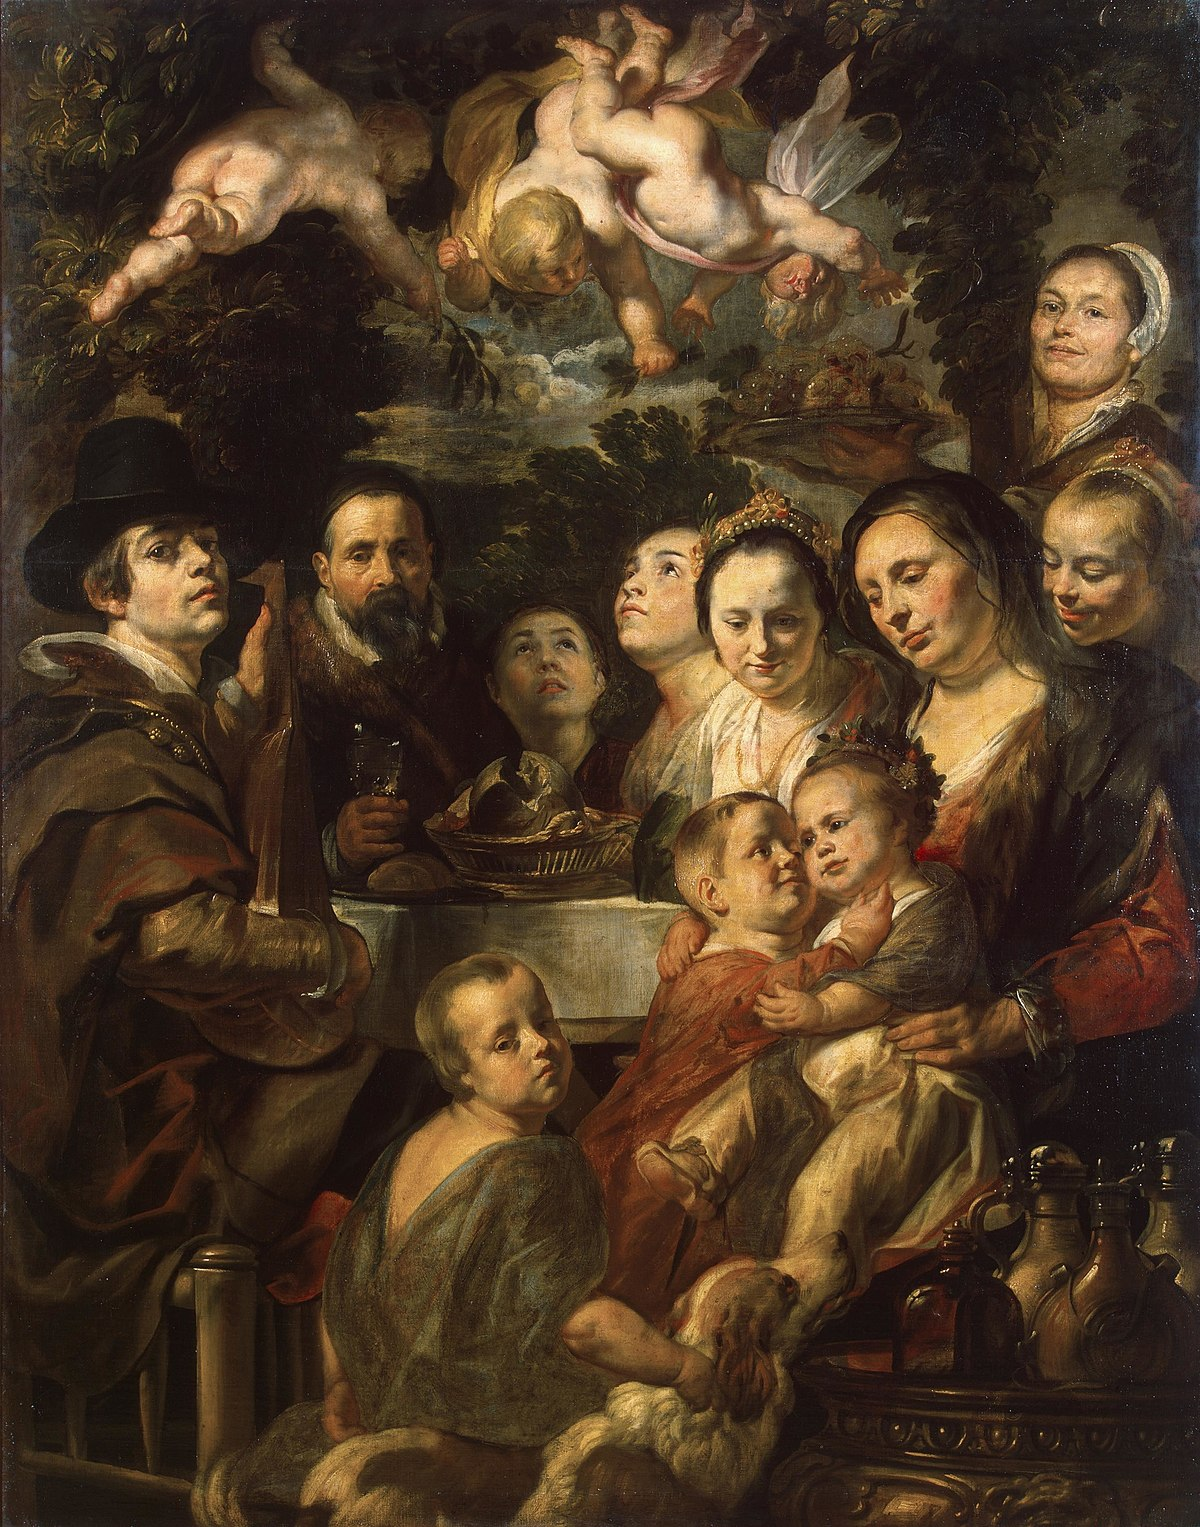 Pittura Contro L' Jacob Jordaens Wikipedia